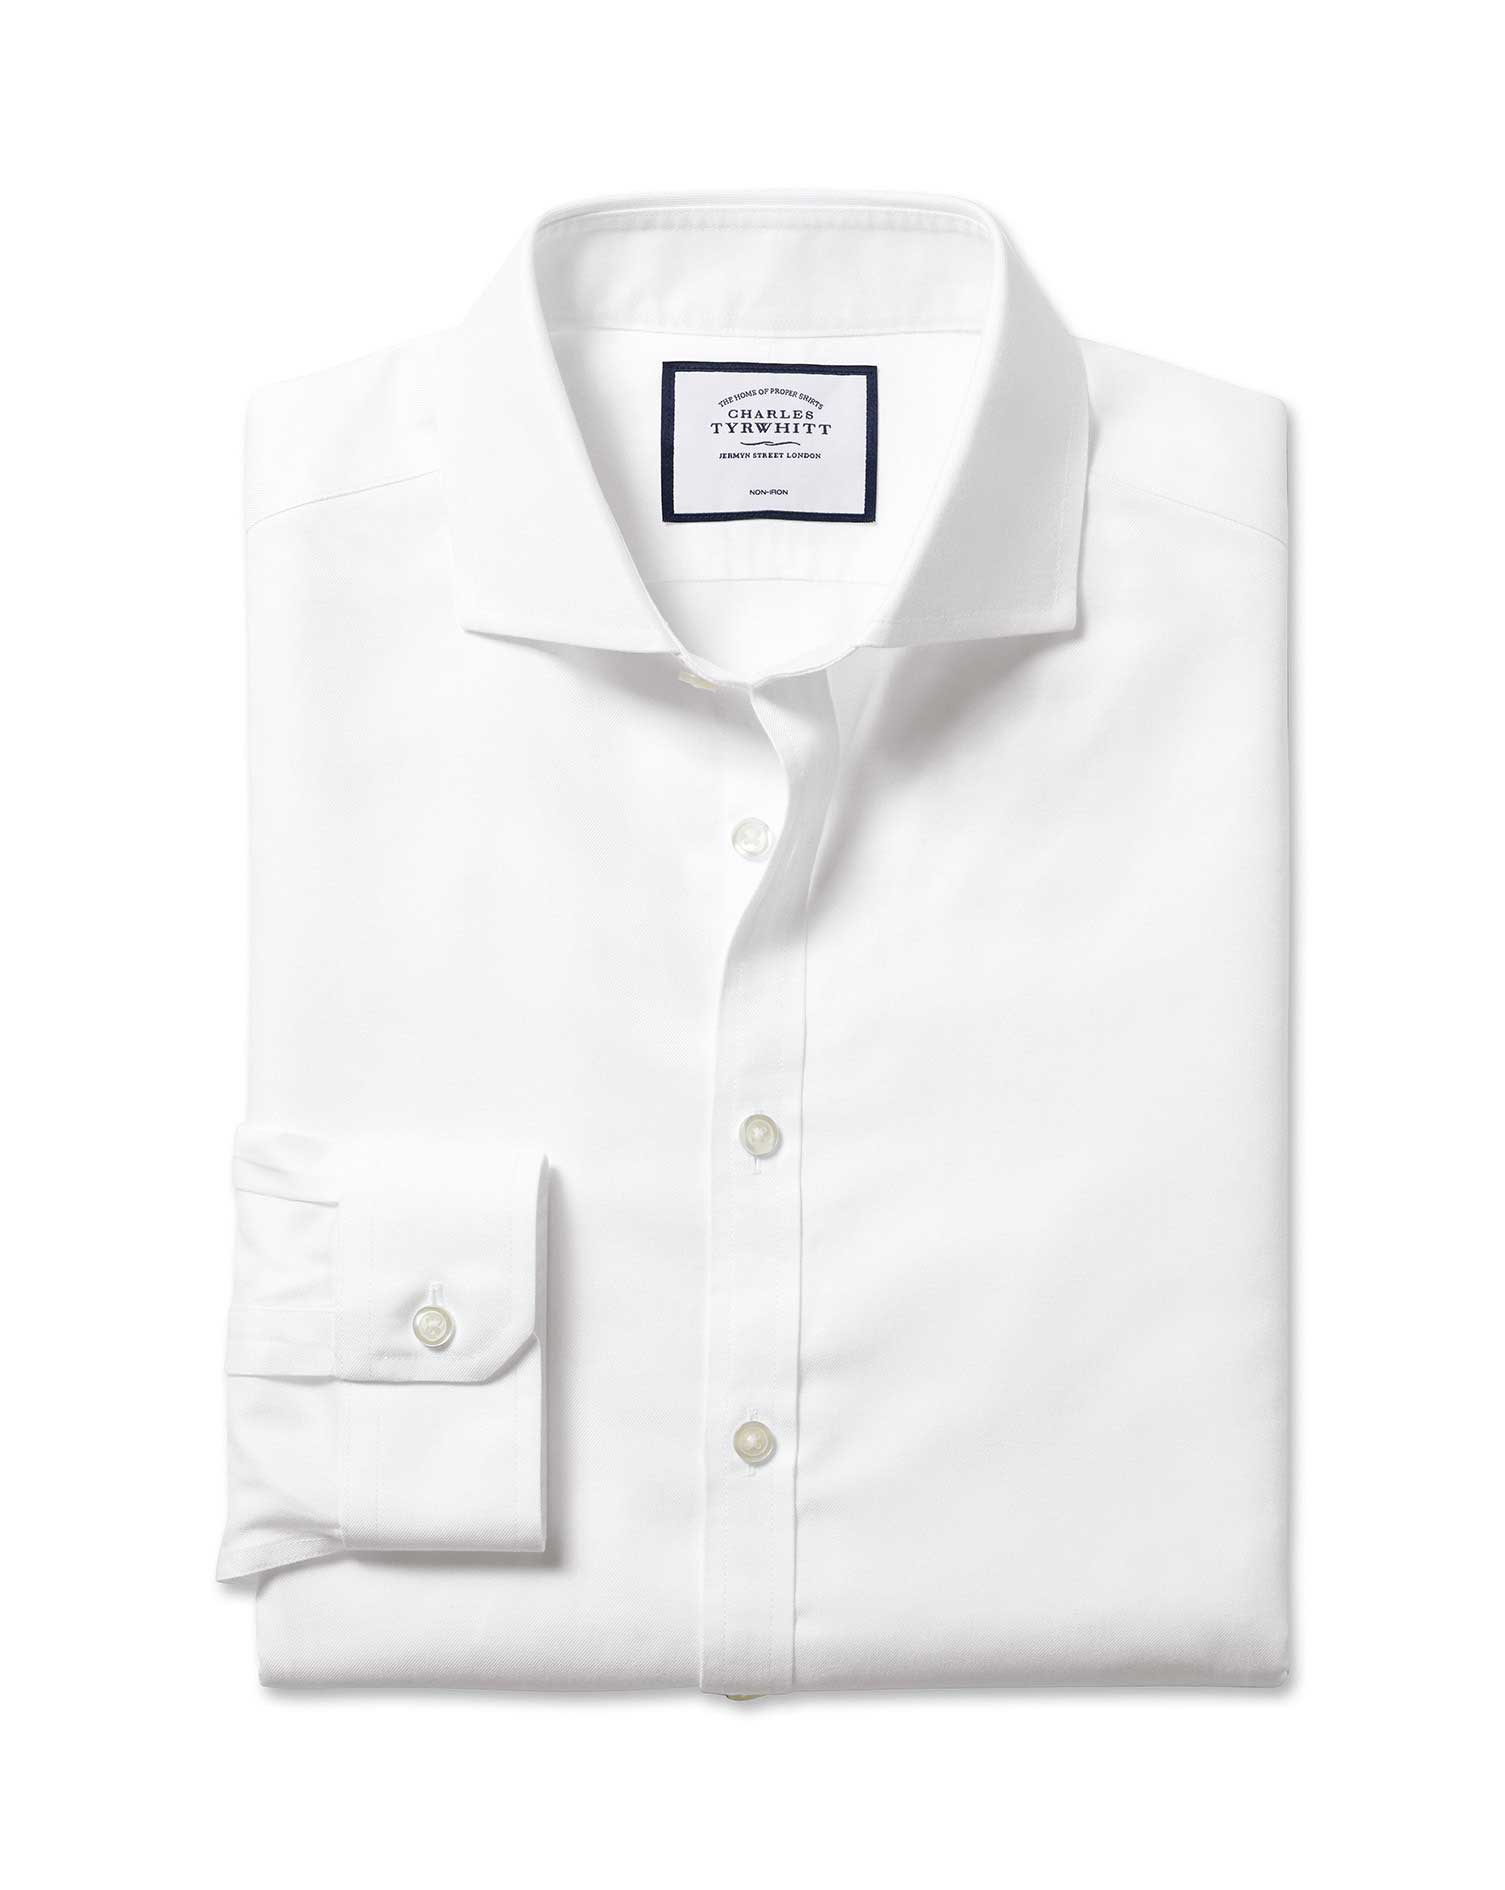 Super Slim Fit Cutaway Non-Iron Twill White Cotton Formal Shirt Double Cuff Size 15.5/36 by Charles